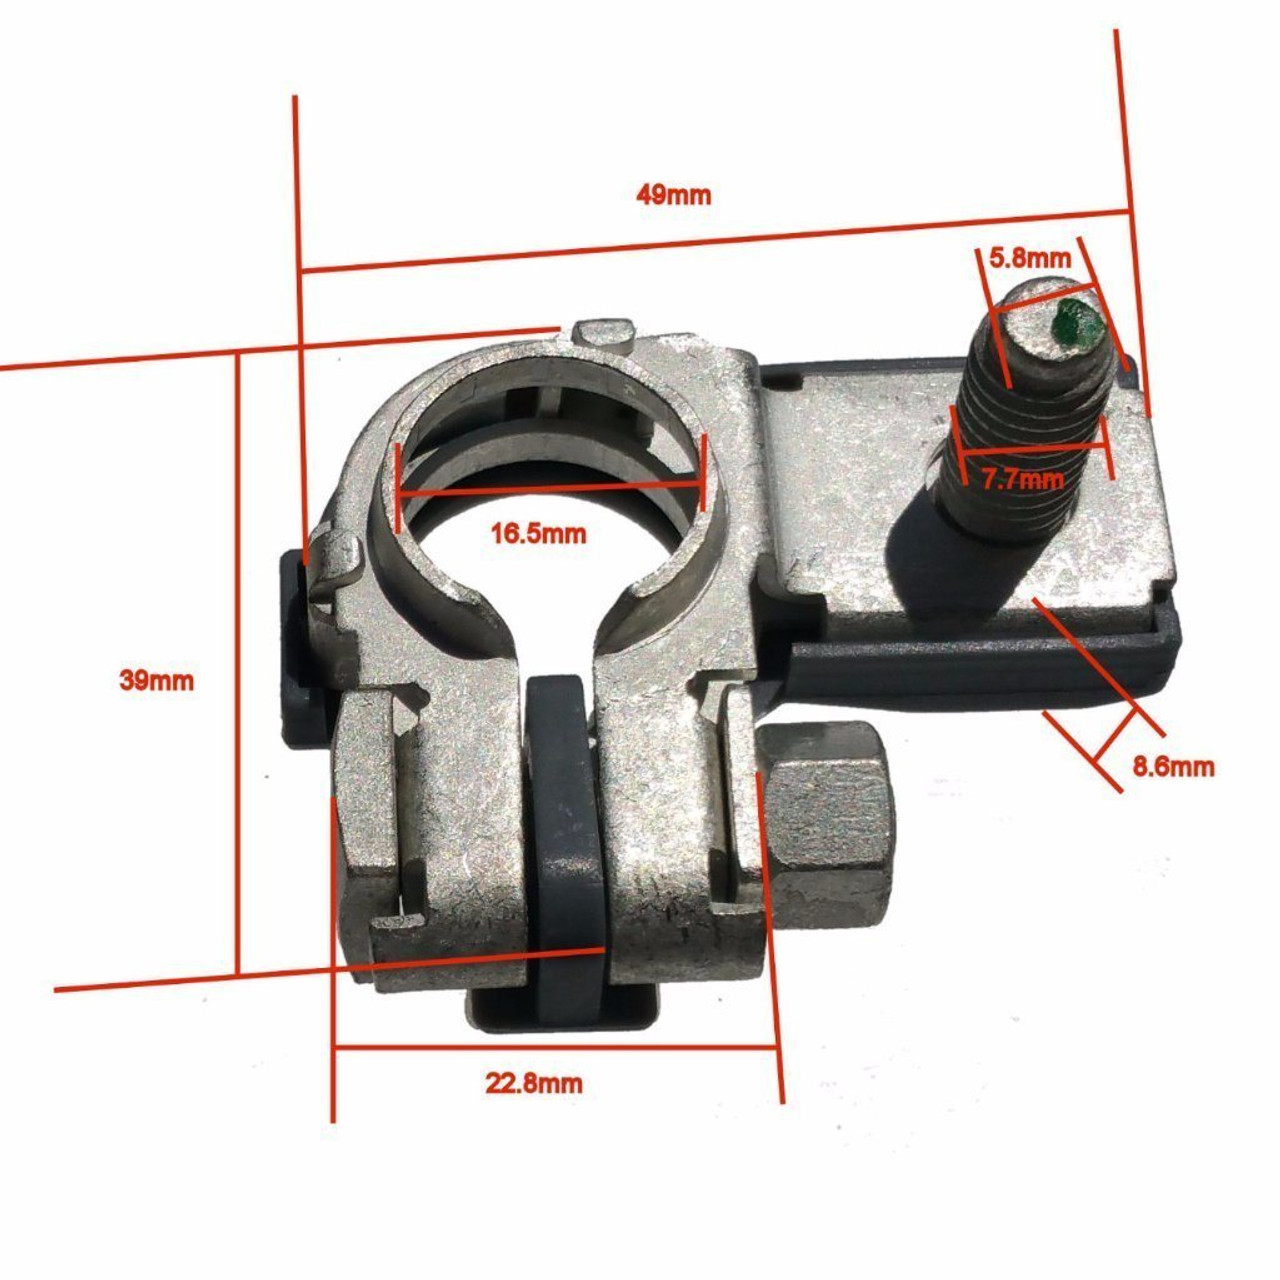 Measurements on Flag style Negative Top Post Battery Terminal Clamp Replacement